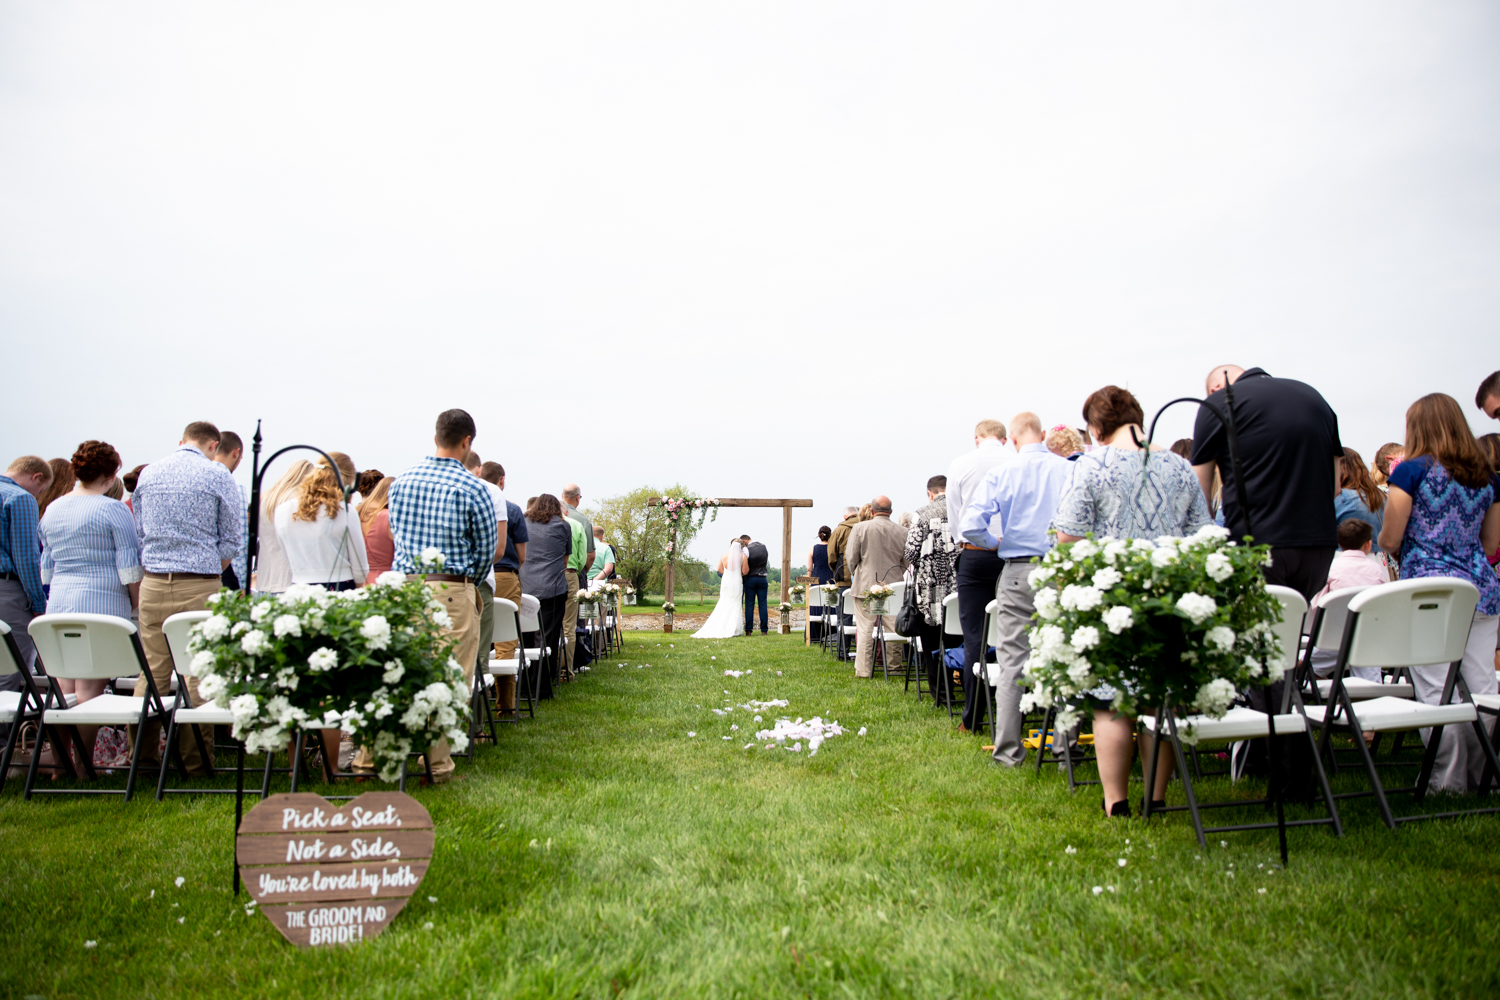 Backyard Wedding in Wisconsin_Whit Meza Photography_49.jpg